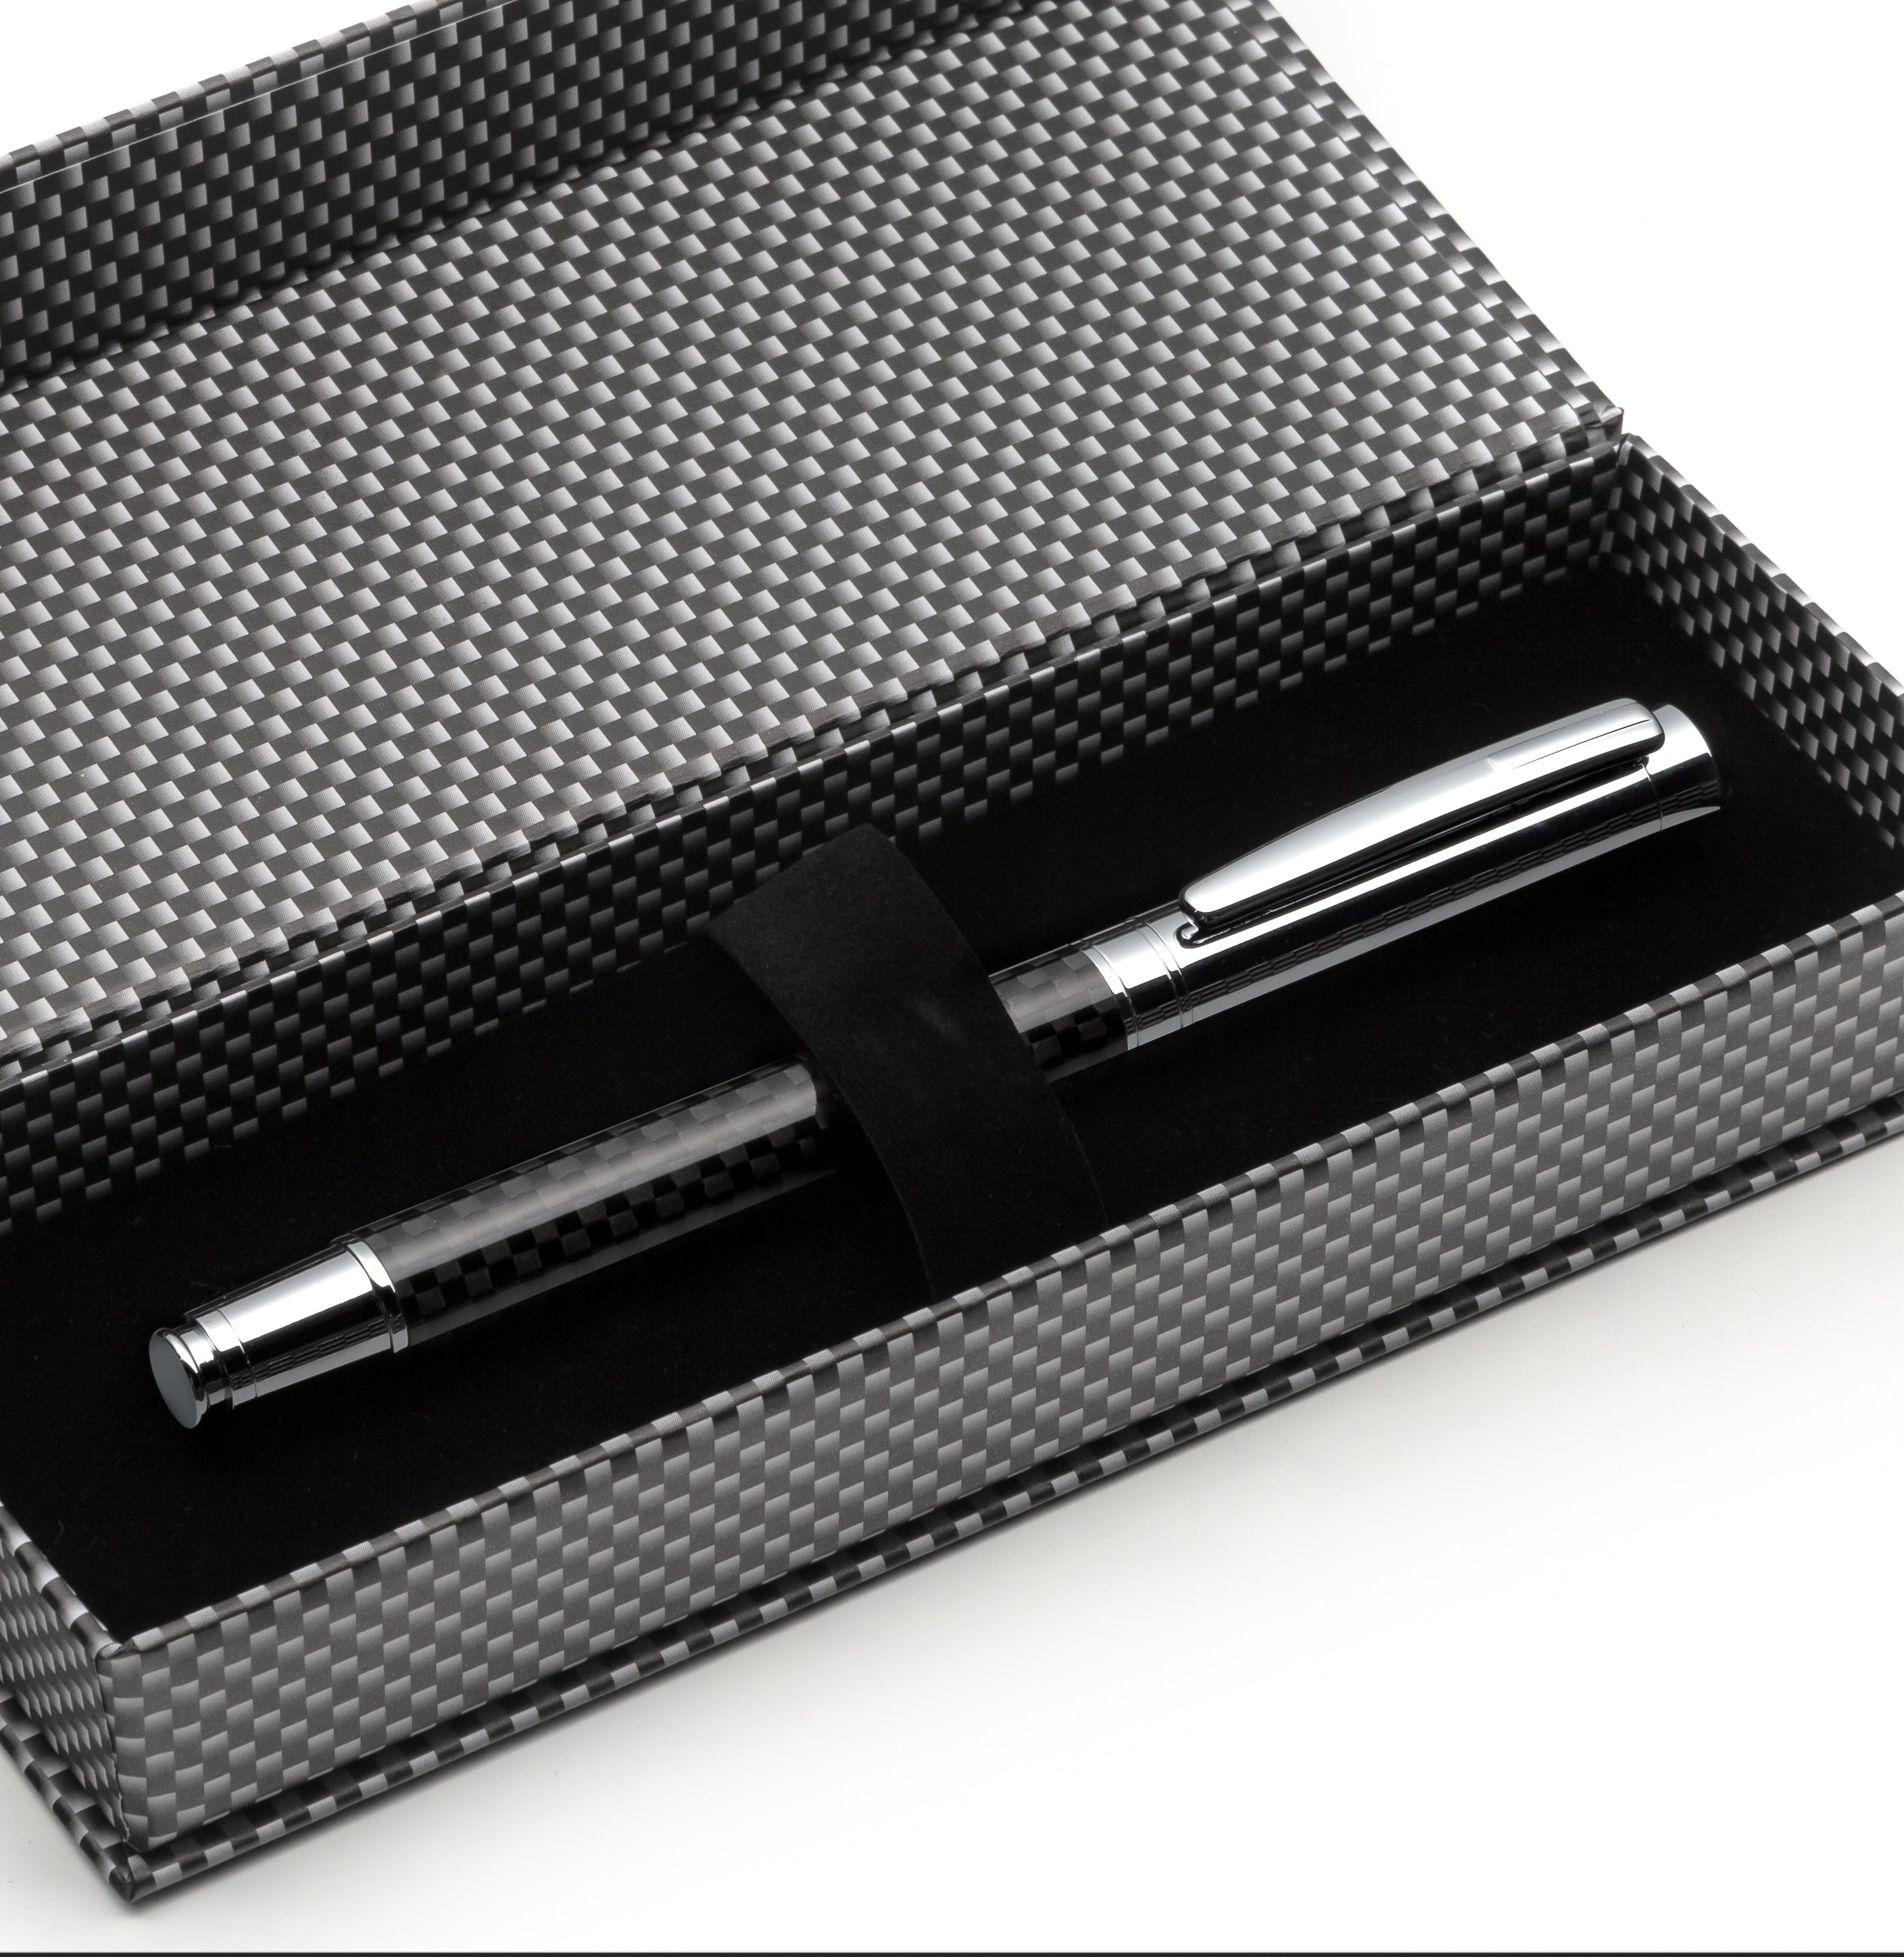 Carbon Fiber Roller Pen - Exquisite Refillable Metal Calligraphy Ballpoint Pen